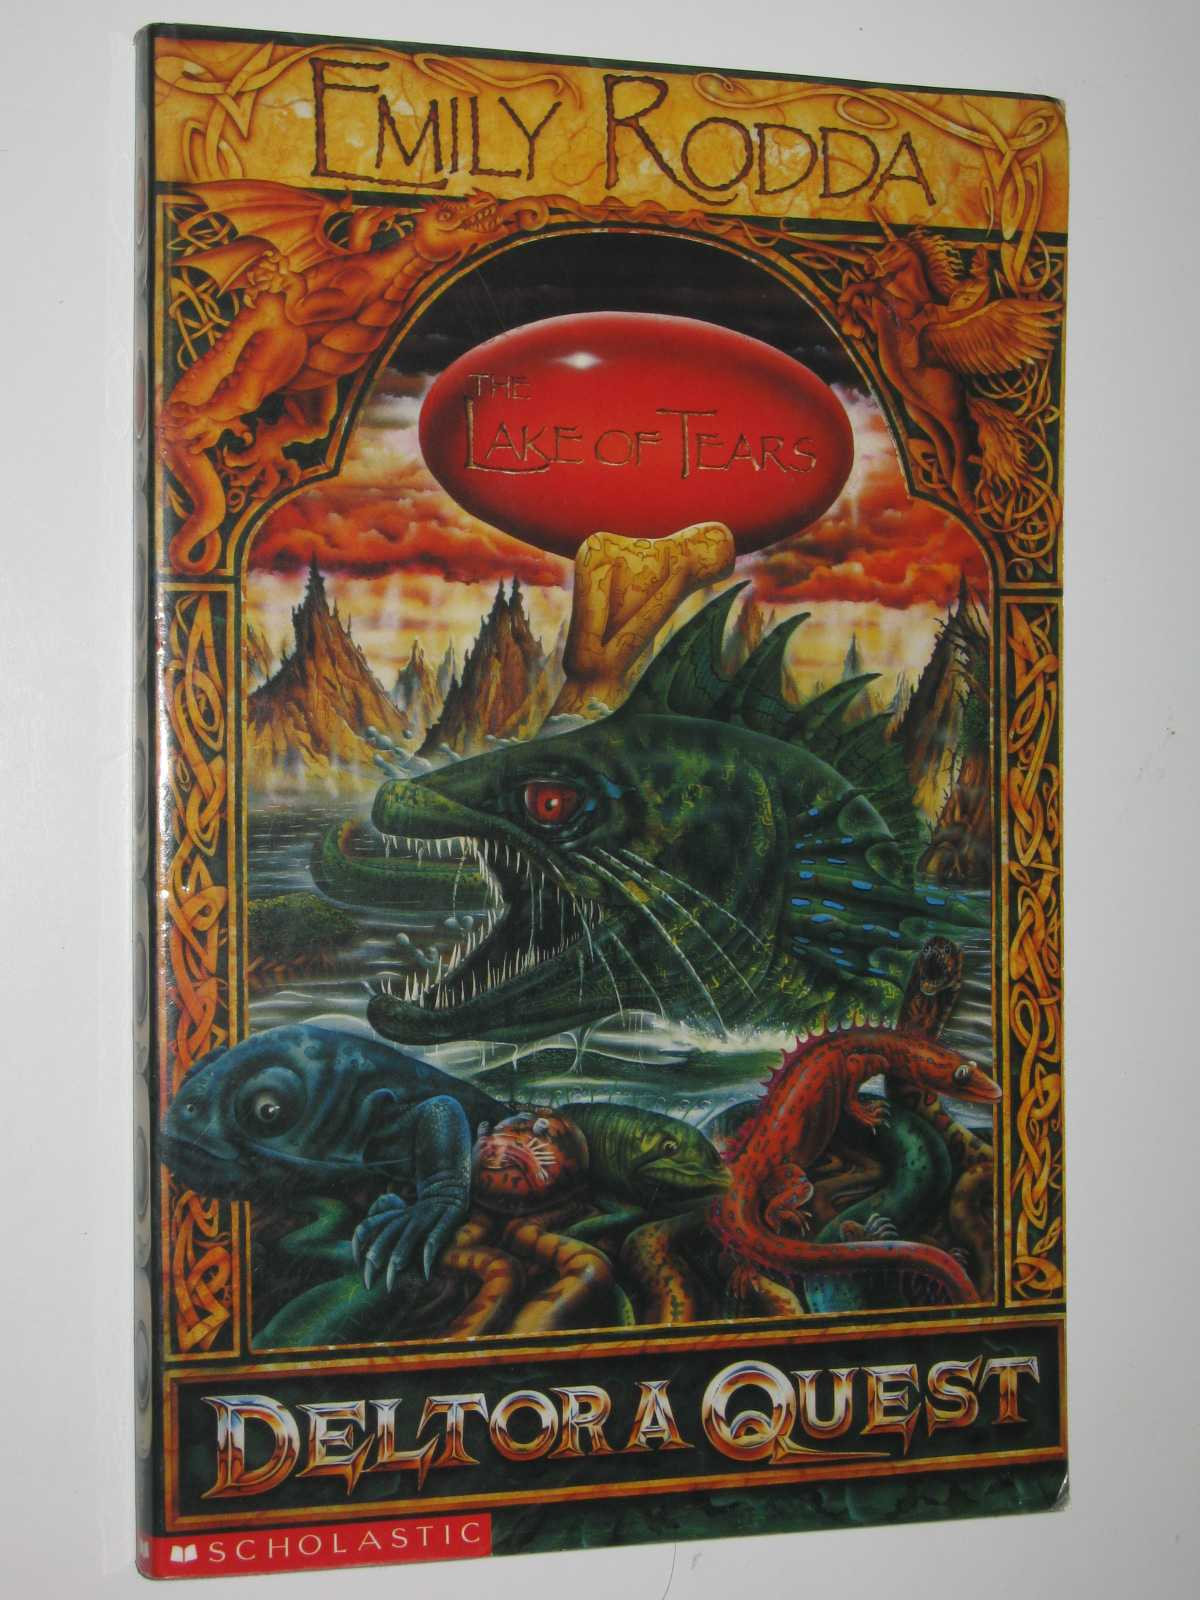 Image for The Lake of Tears - Deltora Quest Series #2